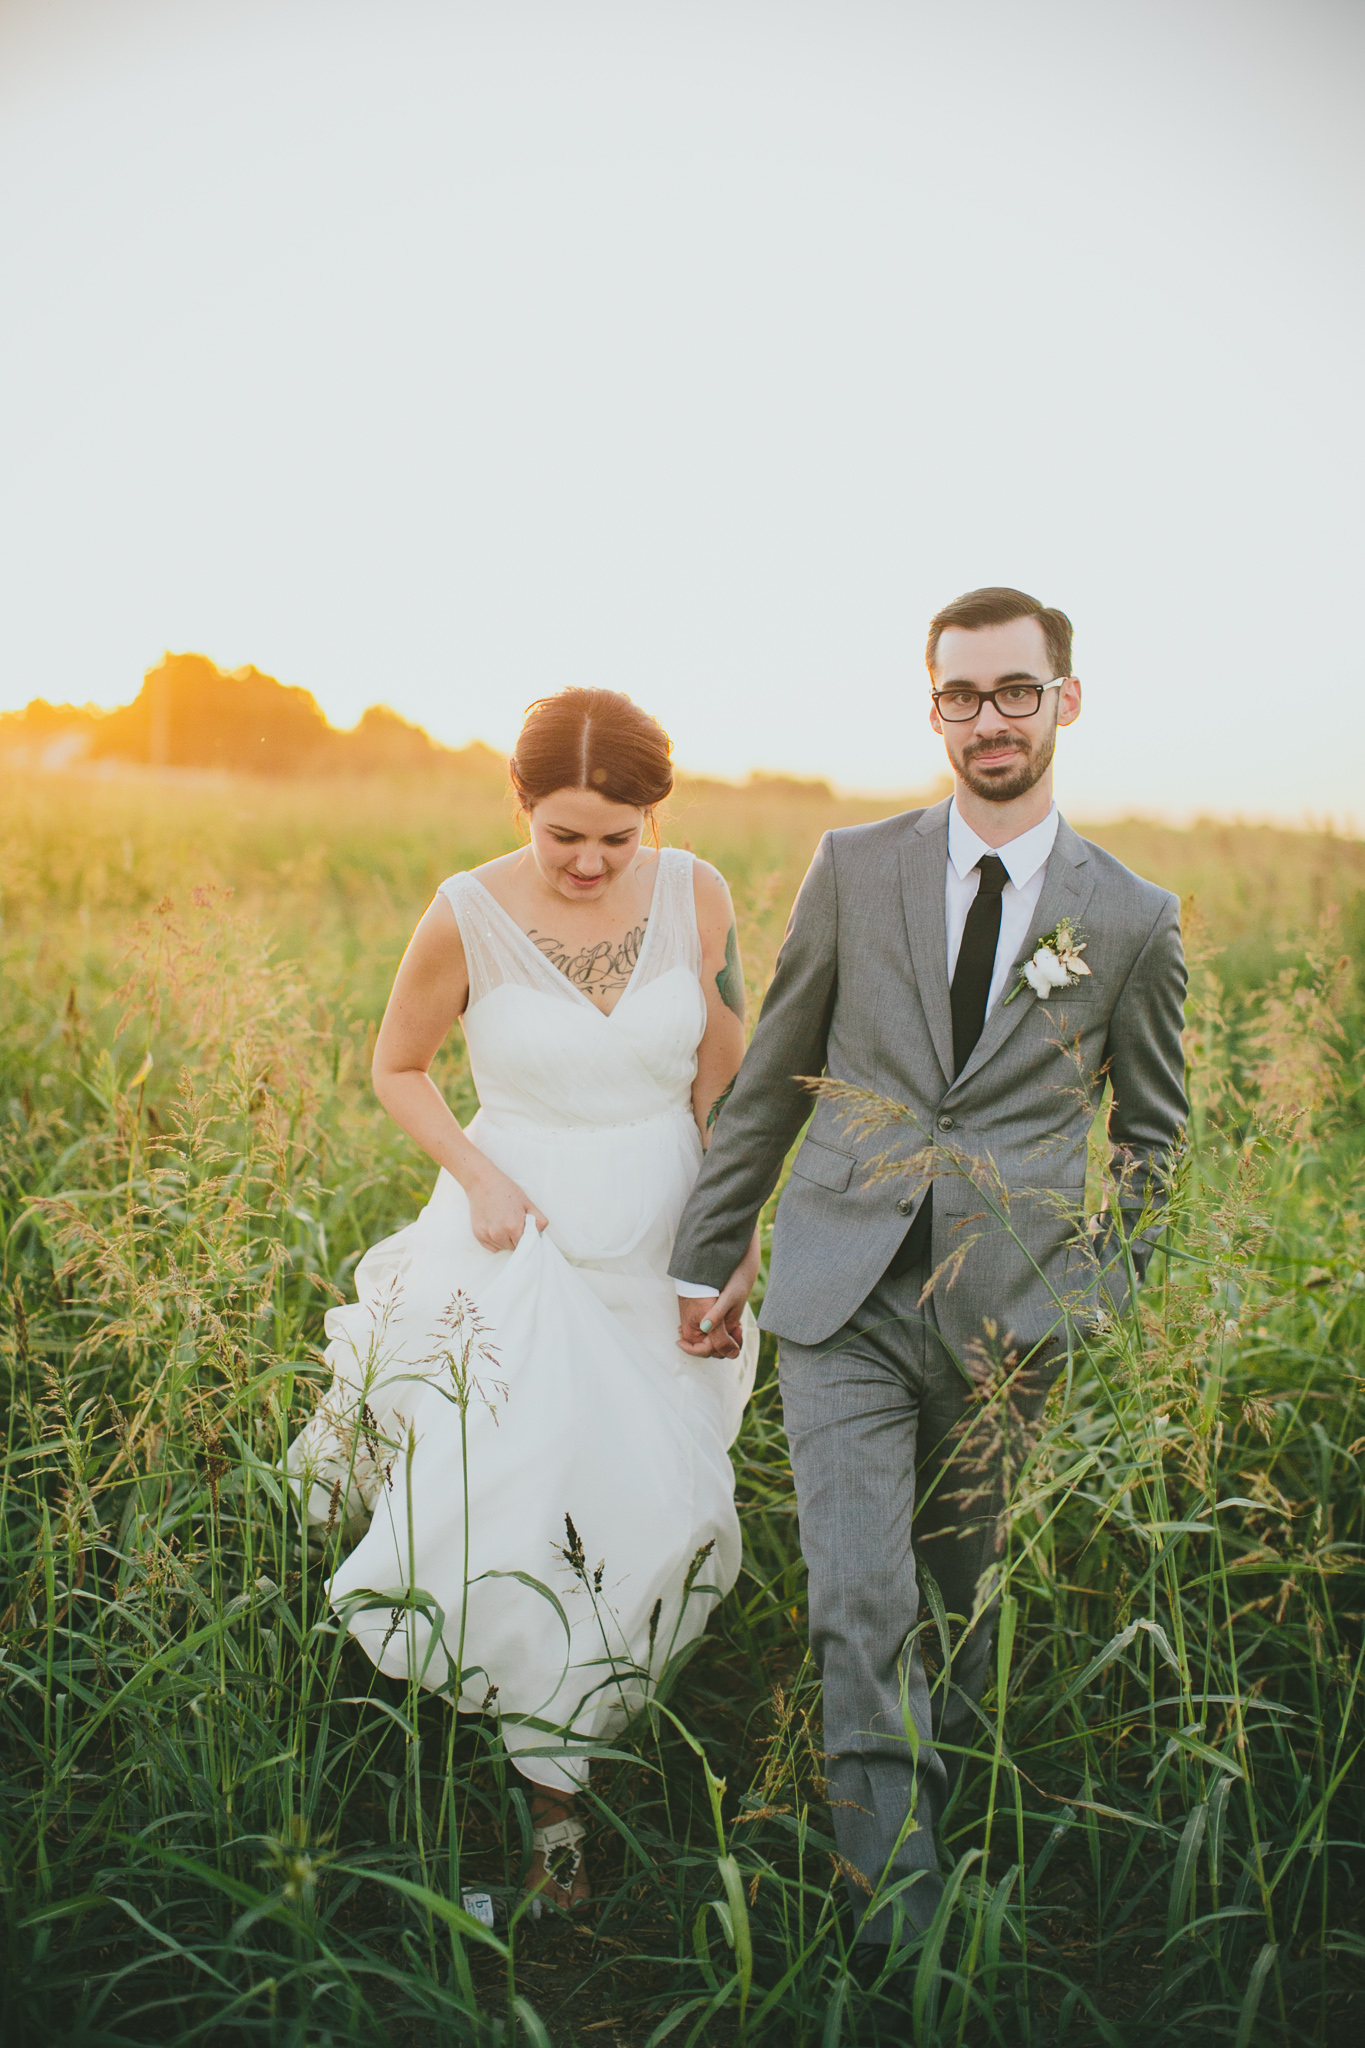 Amy+Nick-WEDDING_KellyBoitanoPhotography20151219_0144